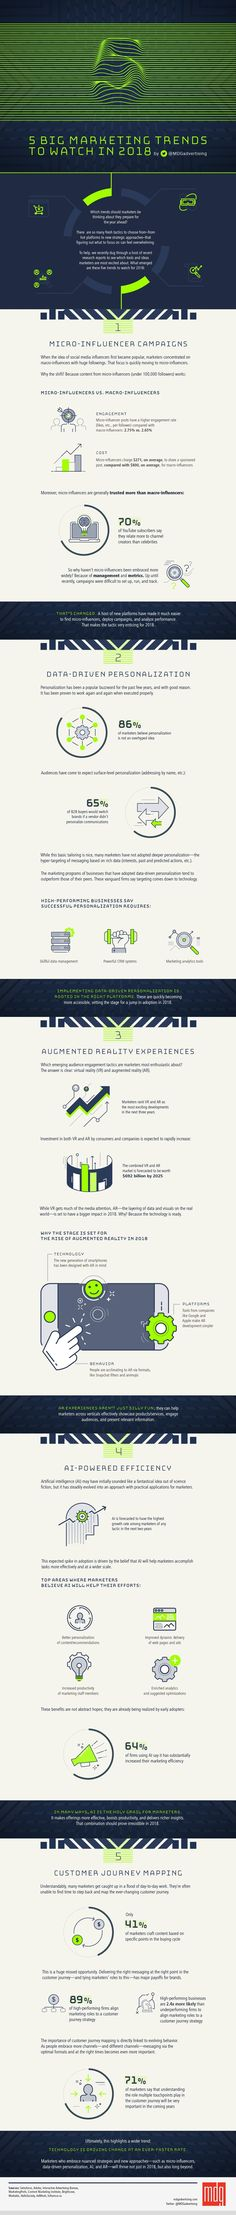 5 Big Marketing Trends to Watch in 2018 - #infographic